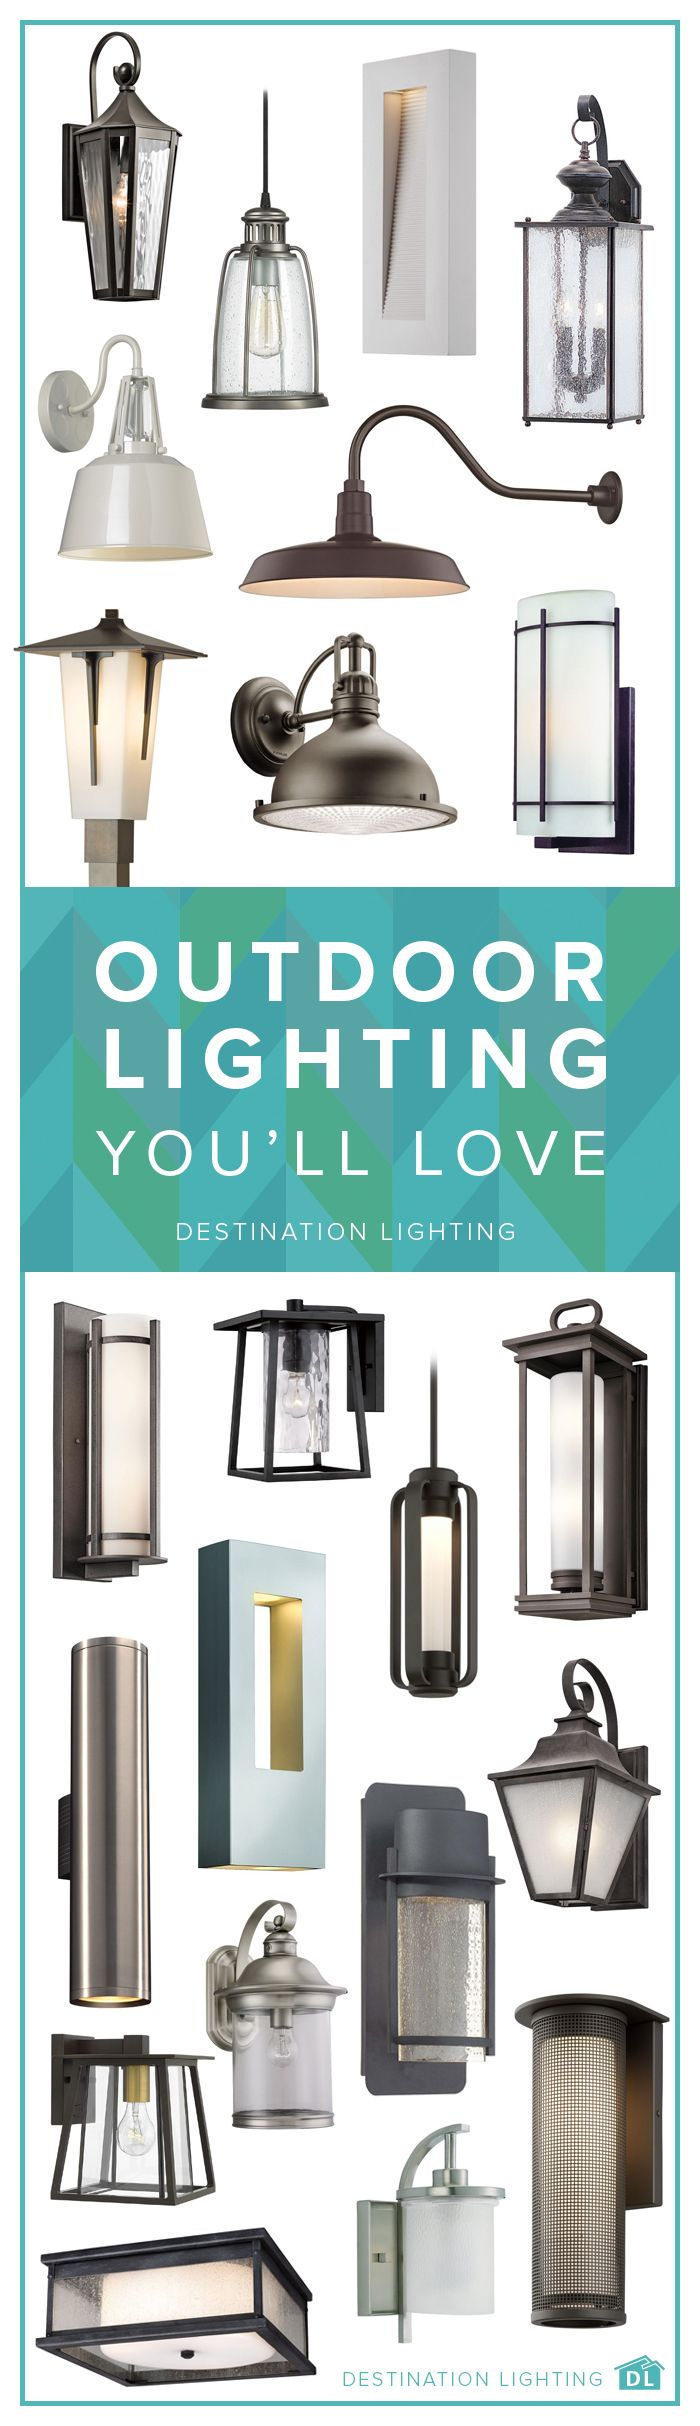 Take your curb appeal to the next level with some beautiful new outdoor lighting. From walls to ceilings to post lights, we've got everything you can dream up right here at Destination Lighting.